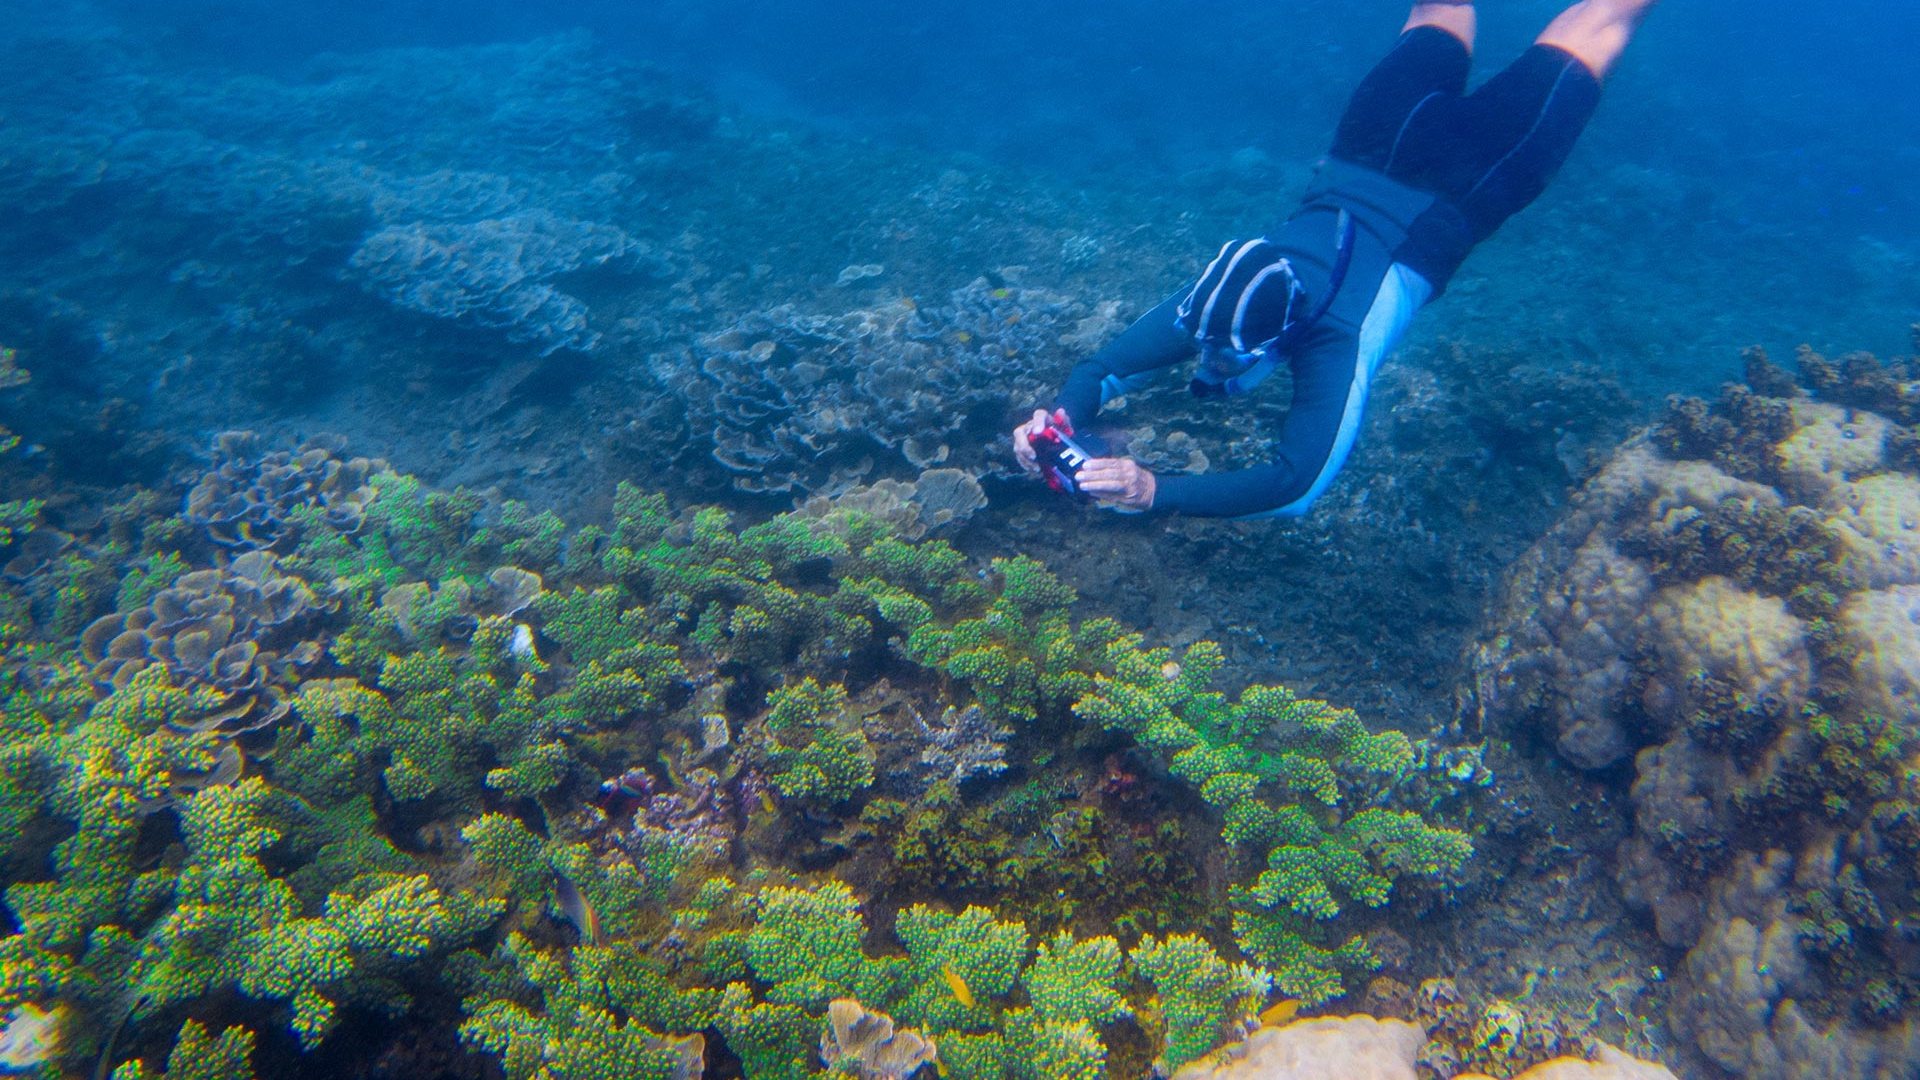 Photographing a coral reef while snorkelling